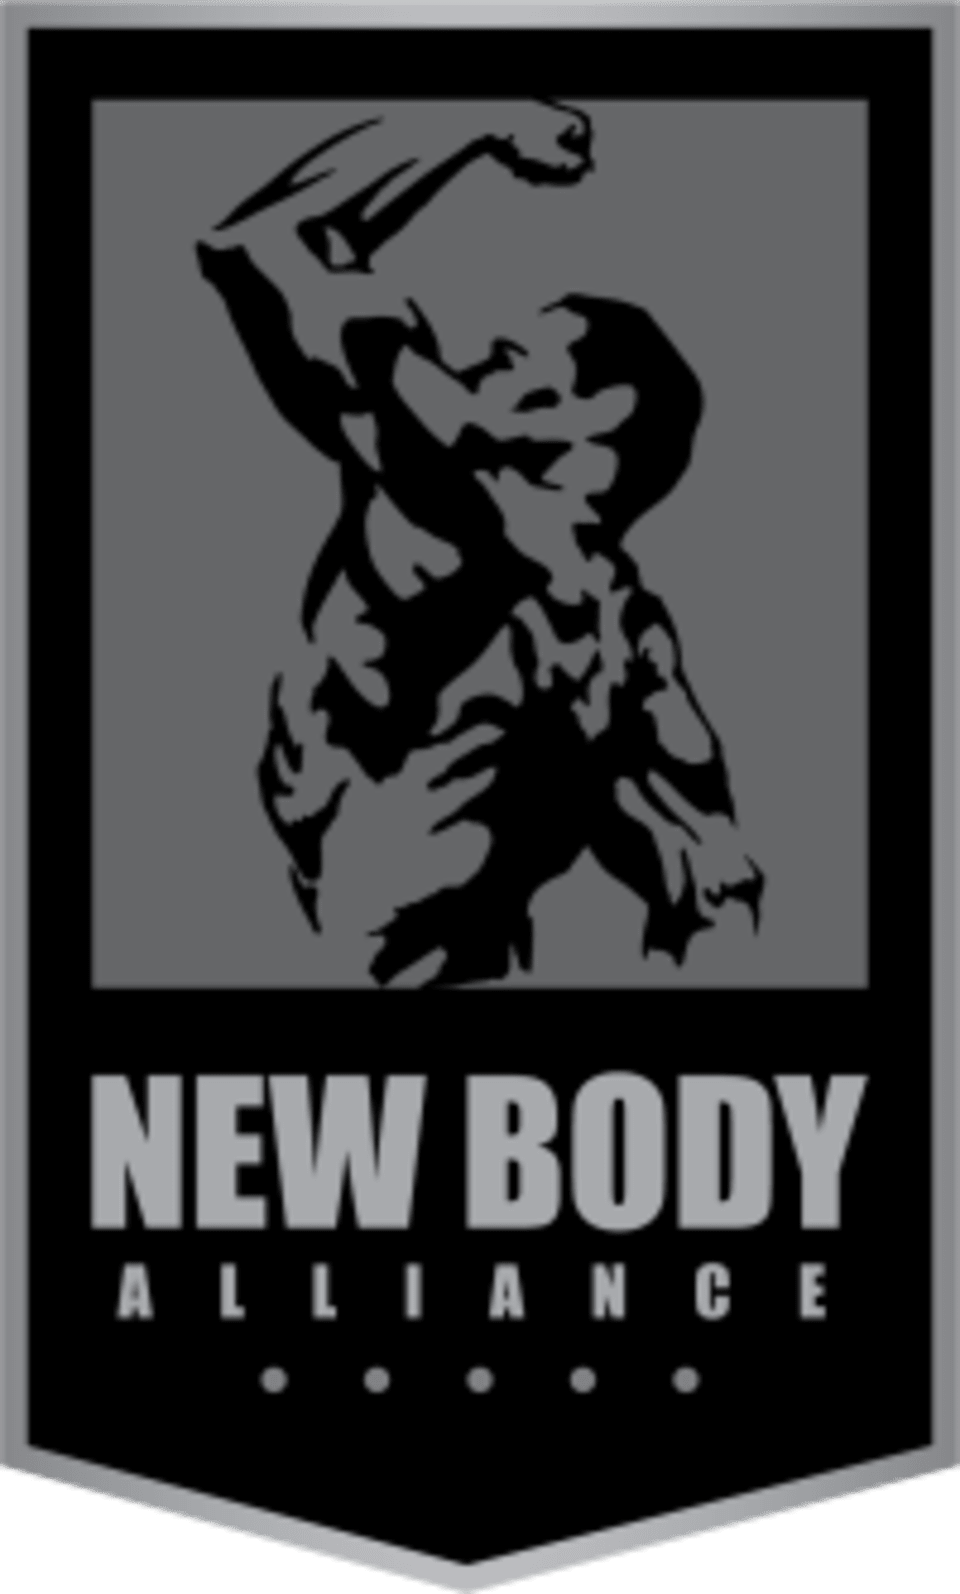 New Body Alliance logo